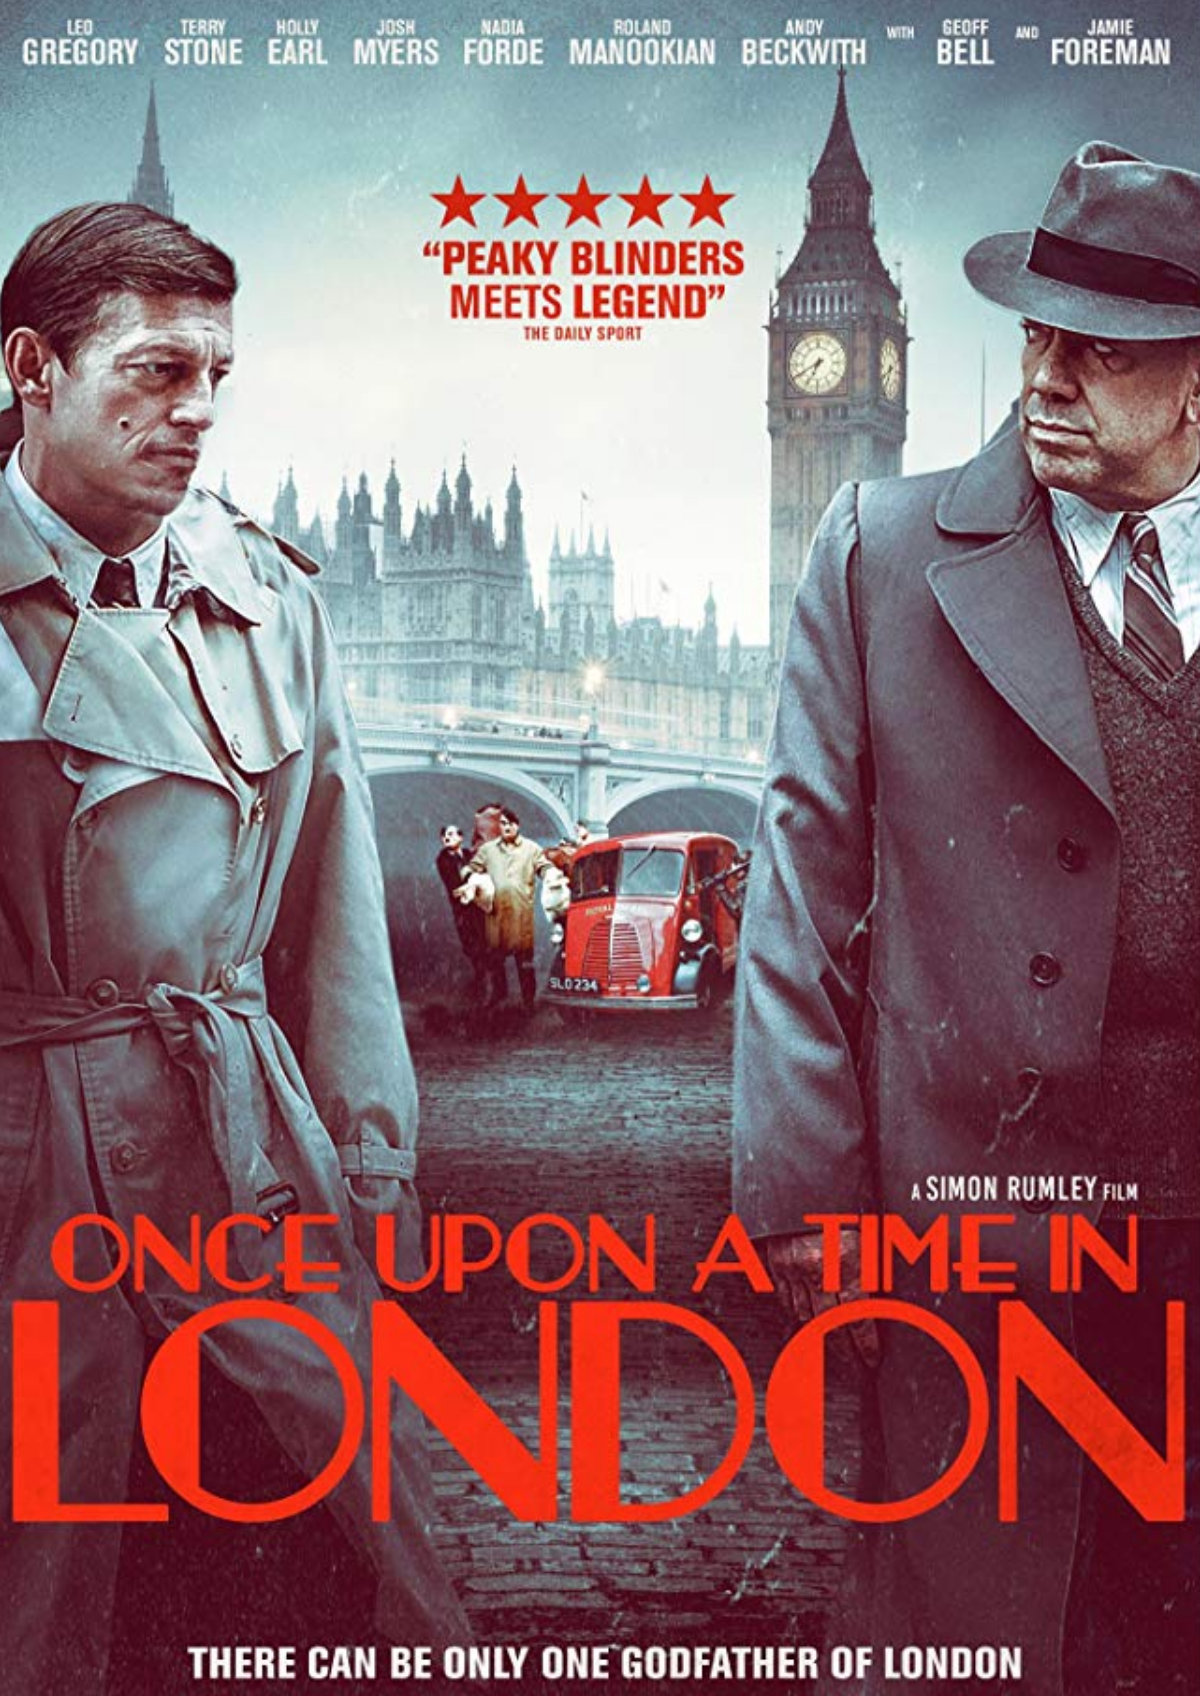 'Once Upon A Time In London' movie poster